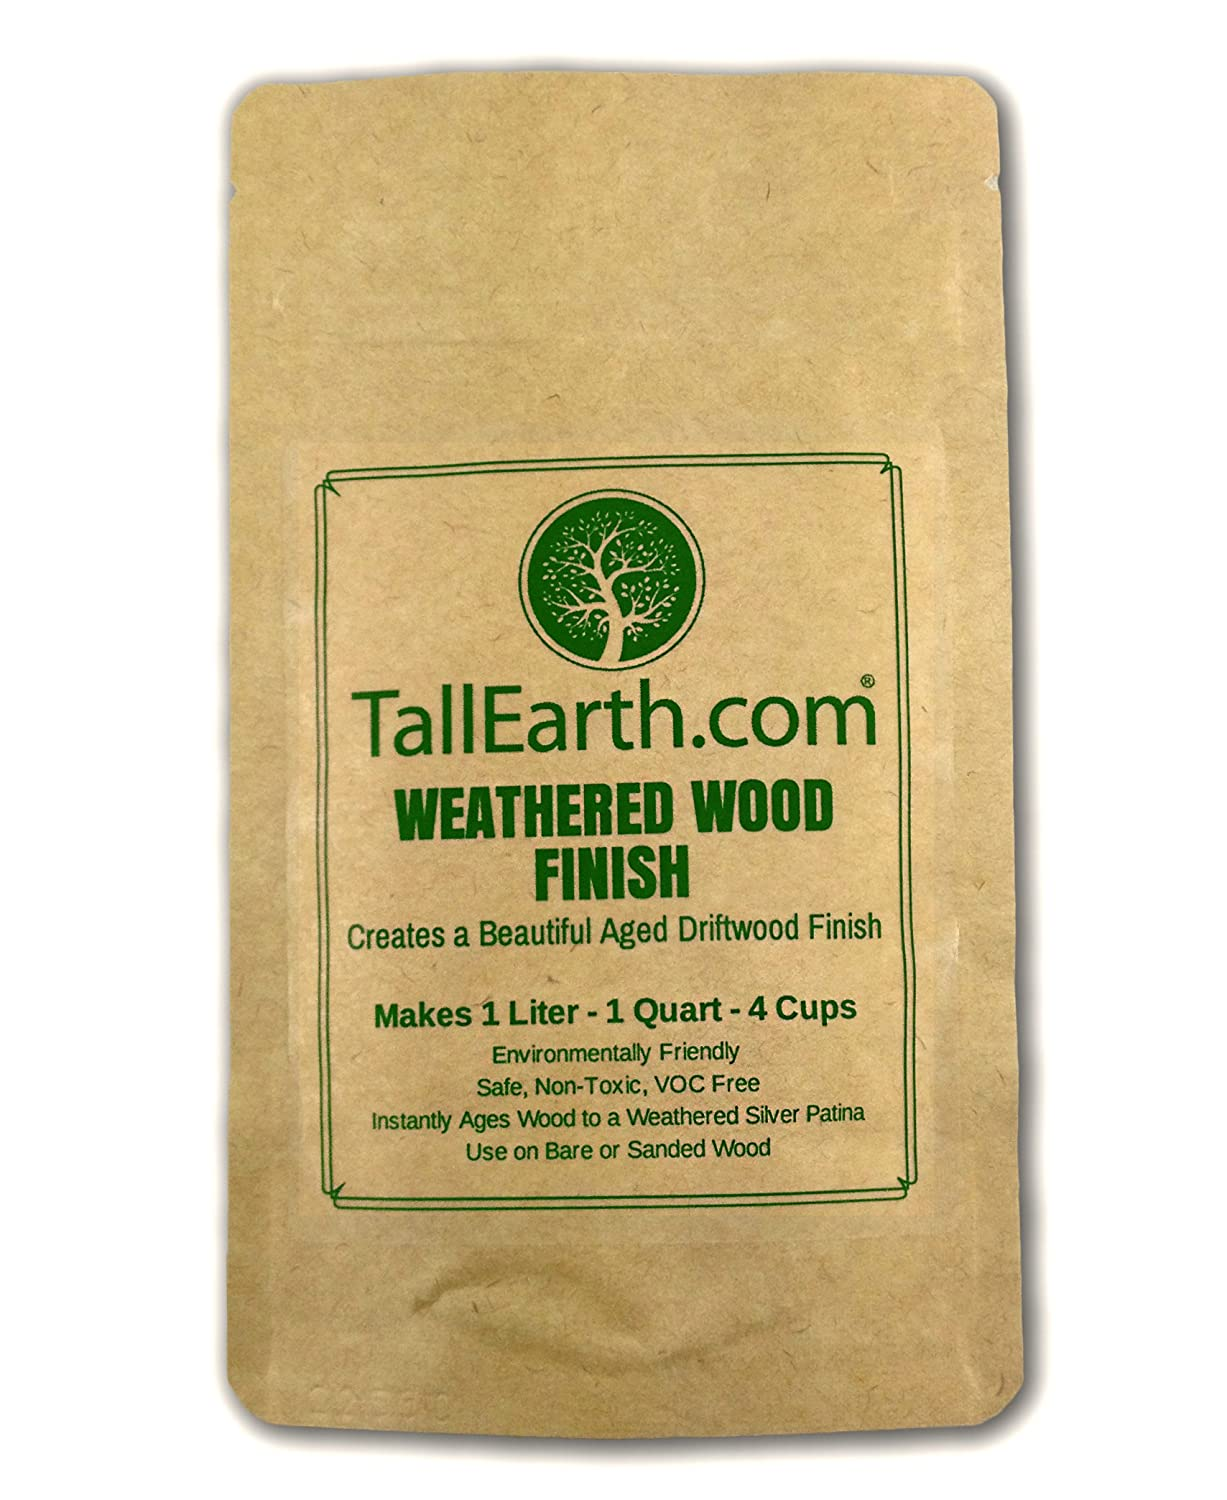 WEATHERED WOOD FINISH NON TOXIC STAIN Aged Driftwood Furniture Craft Stain by Tall Earth